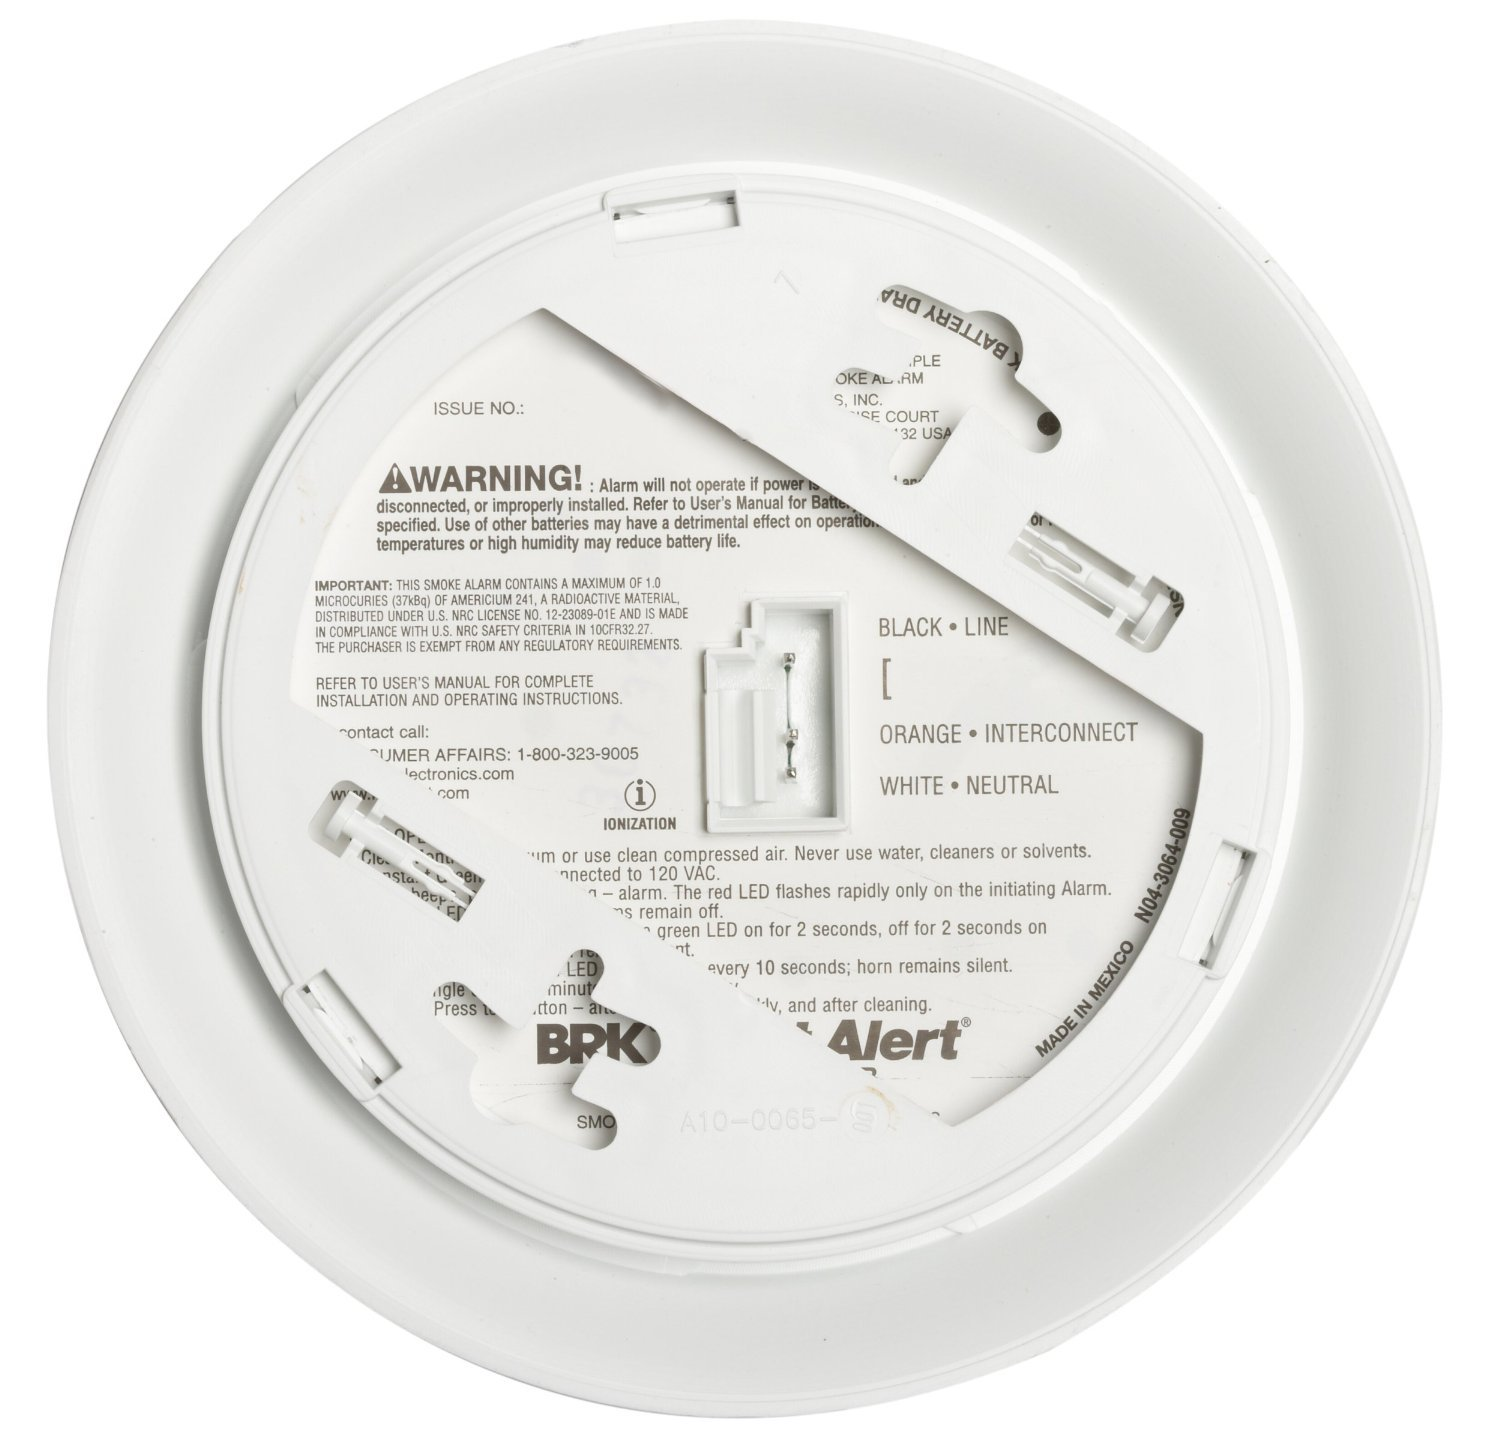 First Alert BRK Brands 9120B Hardwired Smoke Alarm with Battery Backup 4 Pack by First Alert (Image #2)